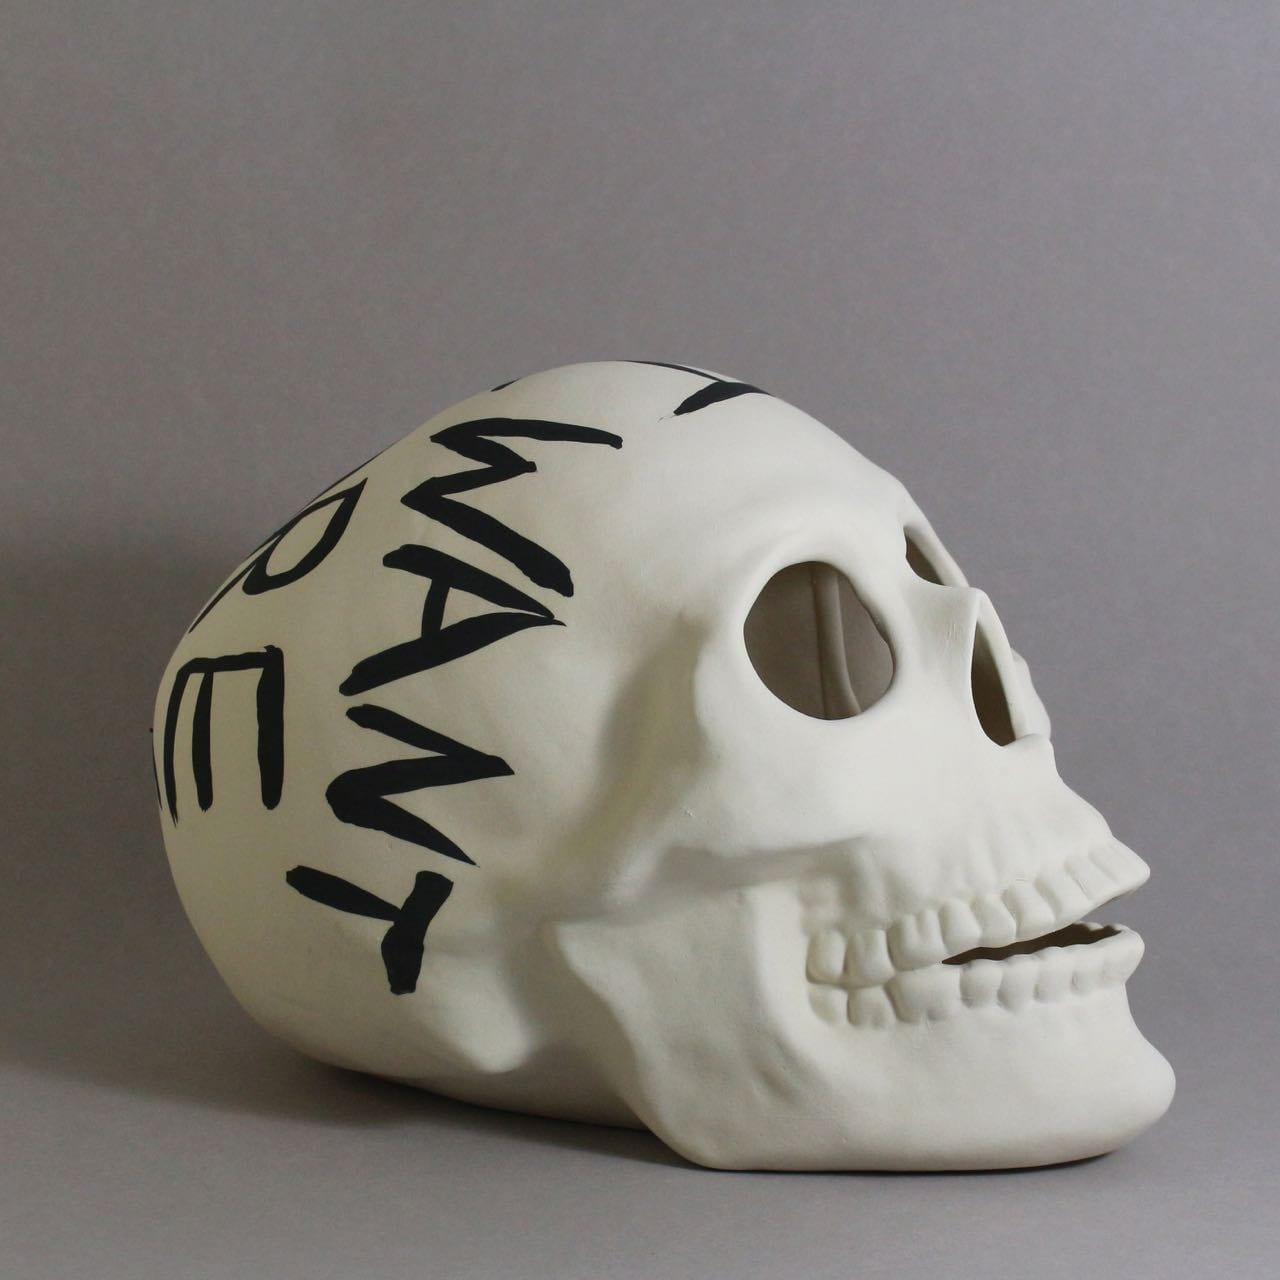 Large Skull All I want is more time - Ceramics-Ceramics-Iggy & Lou Lou-Greenhouse Interiors